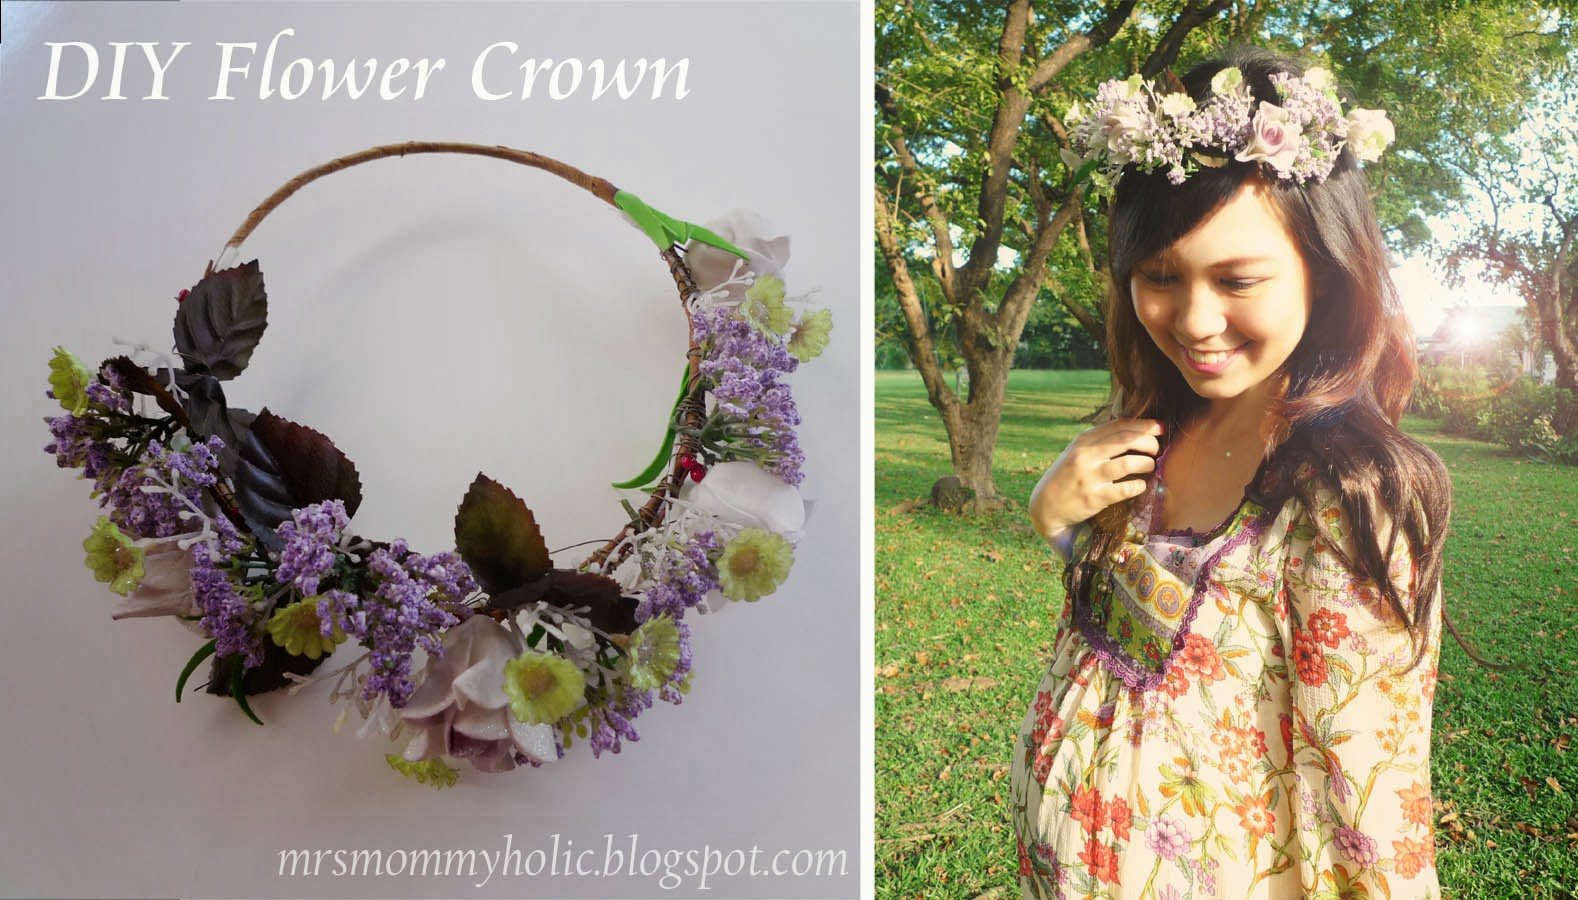 Mrsmommyholic diy flower crown to wear a flower crown for that boho free spirited look luckily all the materials came together and i was able to make one which i completely love izmirmasajfo